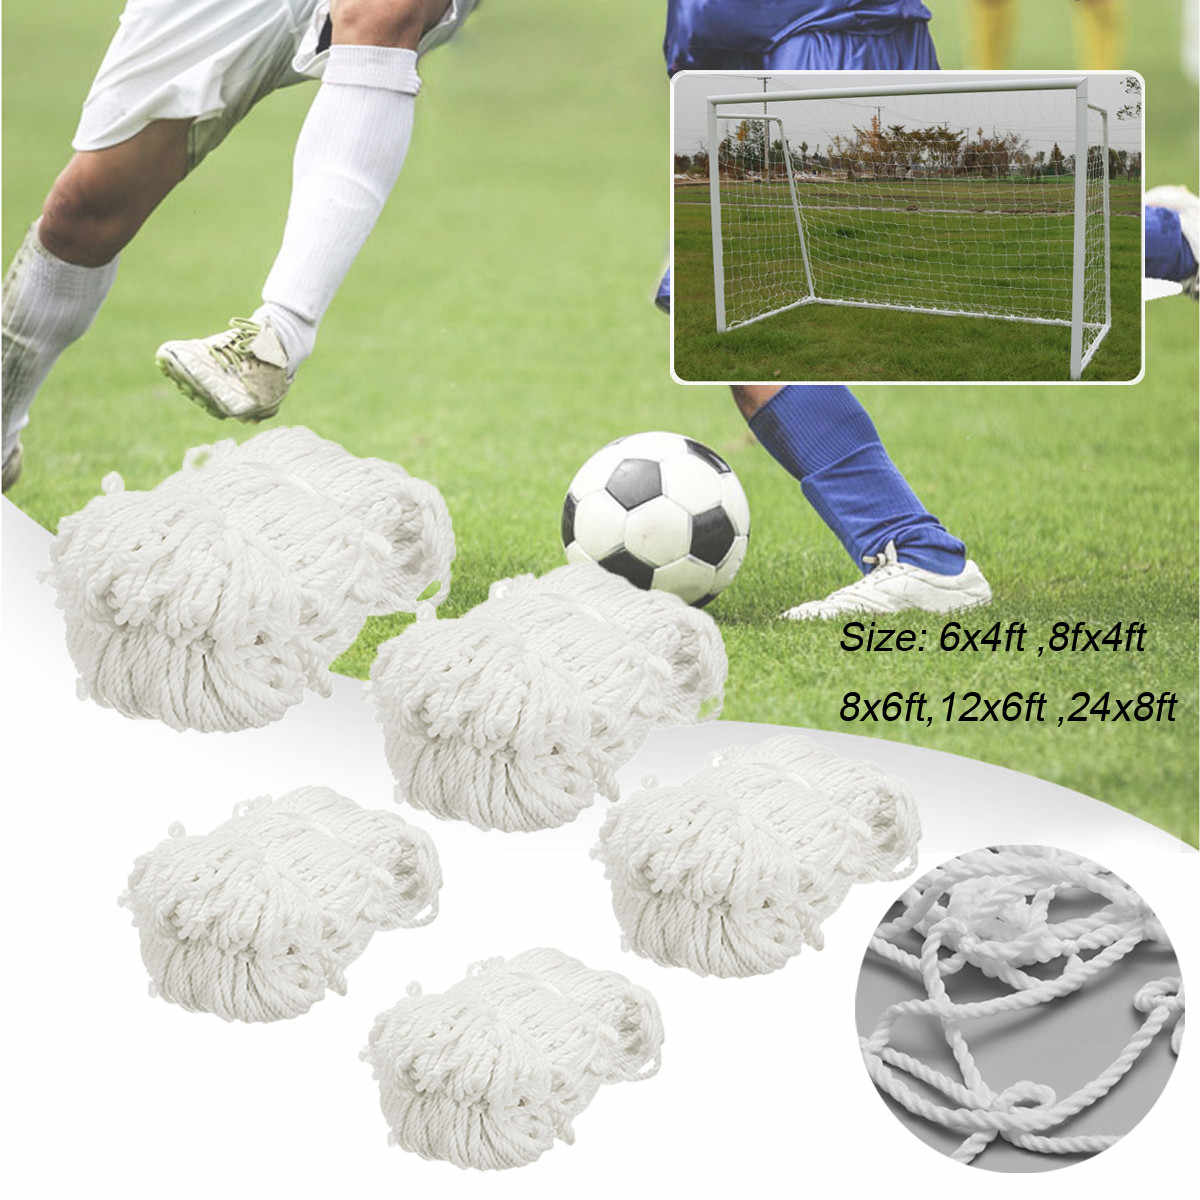 f399c667d Detail Feedback Questions about Football Soccer Net Soccer Goal Net  Football Goal Post Nets for Outdoor Soccer Match Training Match Adult Kids  on ...